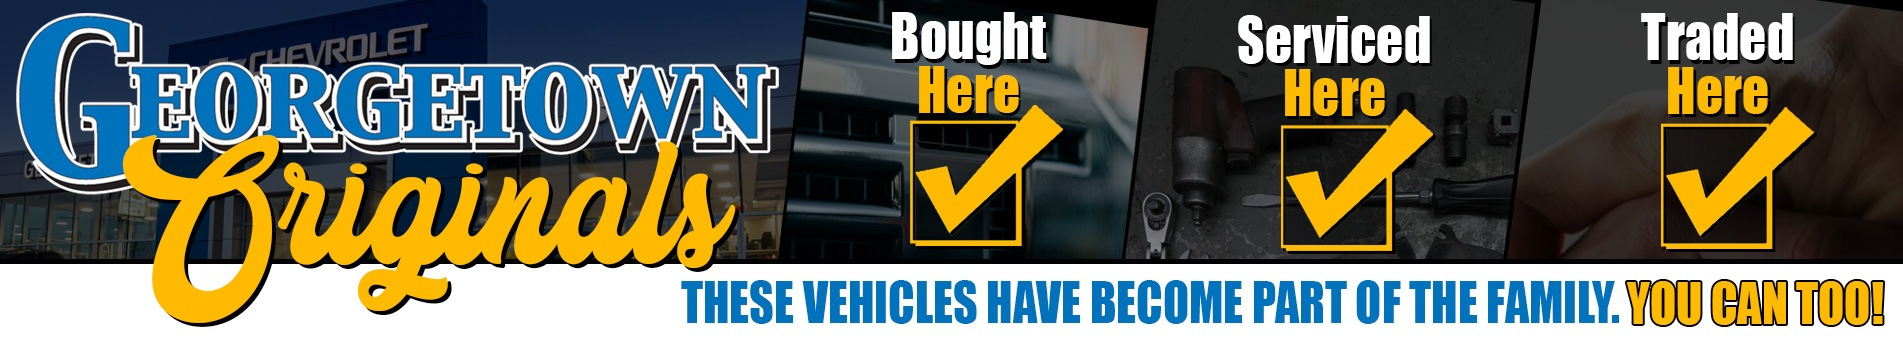 Original Used Cars that have been bought, serviced and traded right here in Georgetown at Georgetown Chevrolet, your Pre-Owned car, truck and SUV superstore